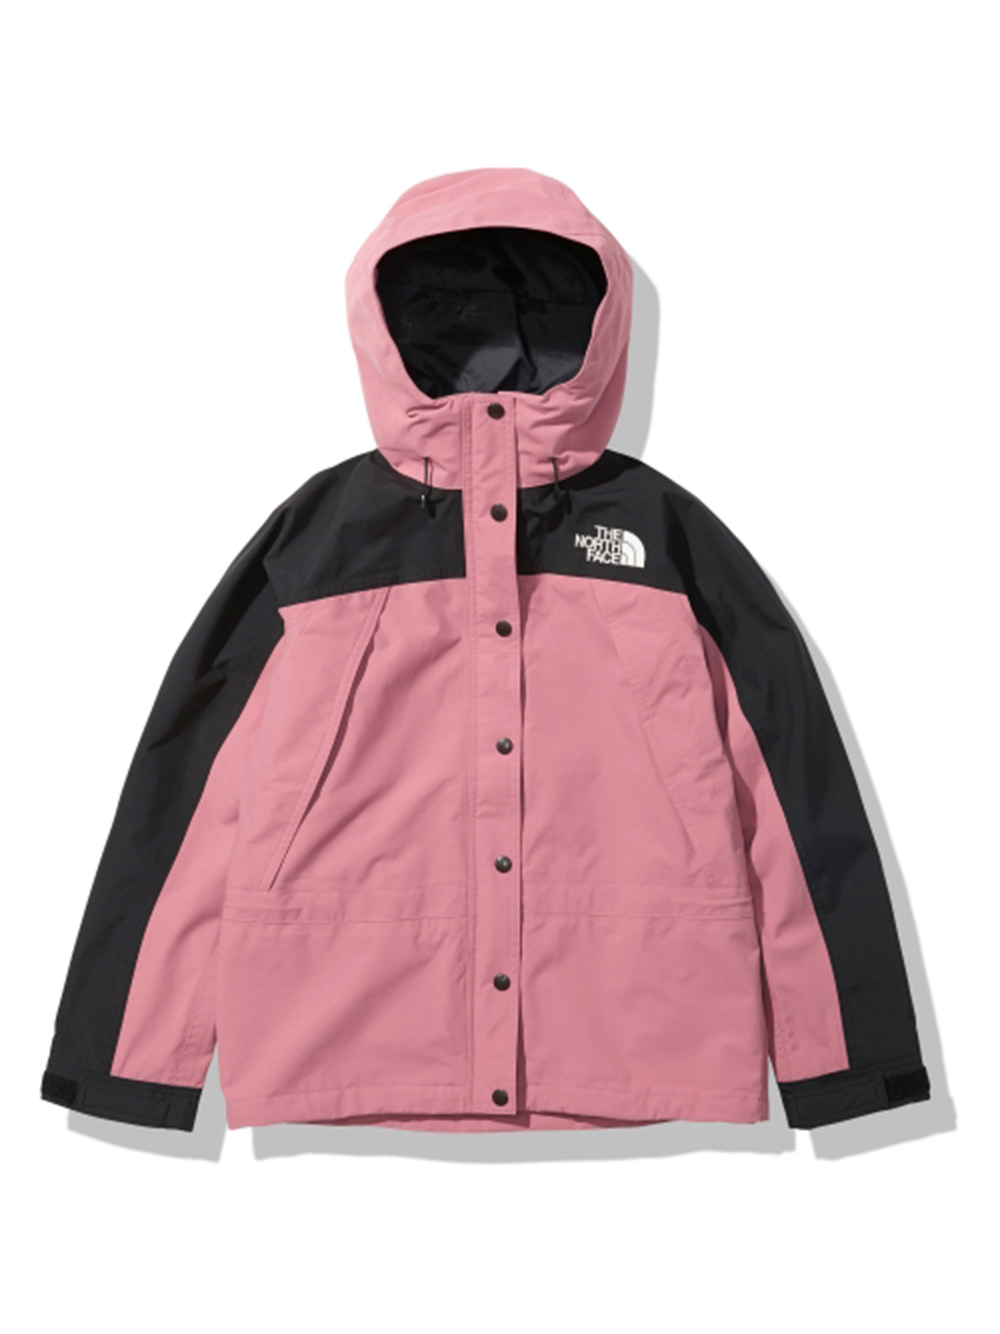 【THE NORTH FACE】Mountain Light Jacket(ROSE-M)